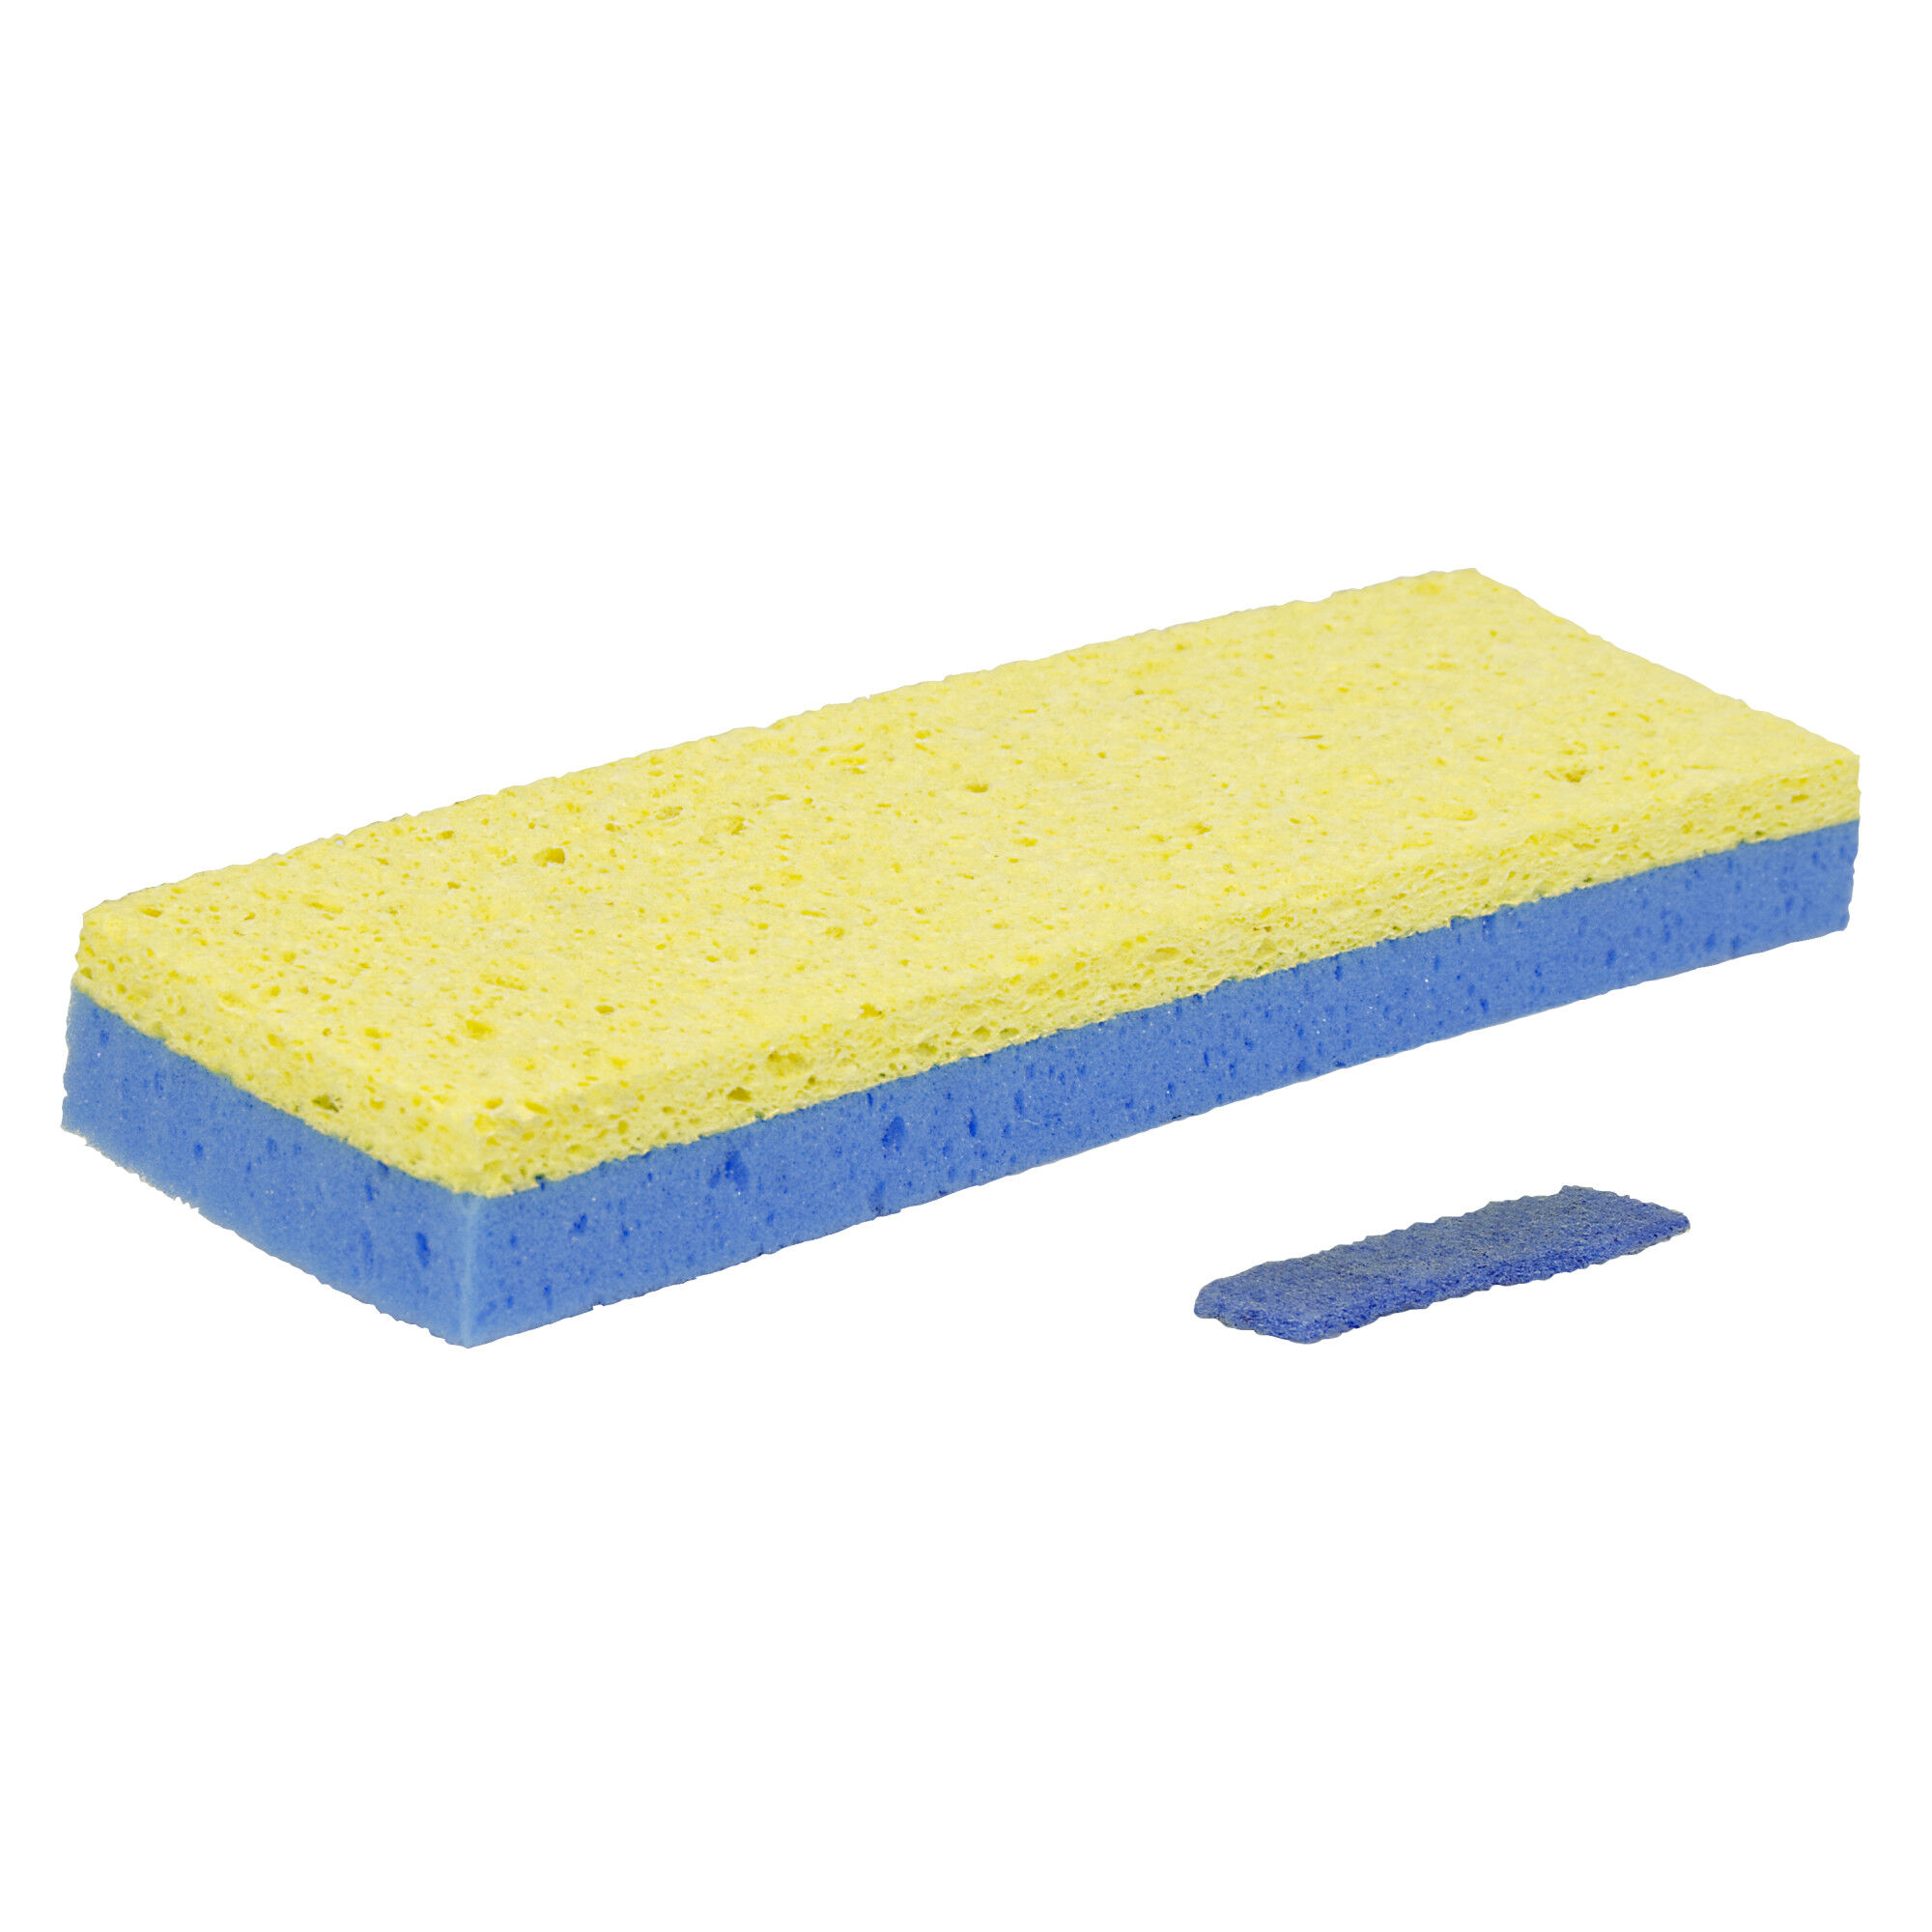 Quickie Sponge Mop Refill | Quickie Cleaning Tools